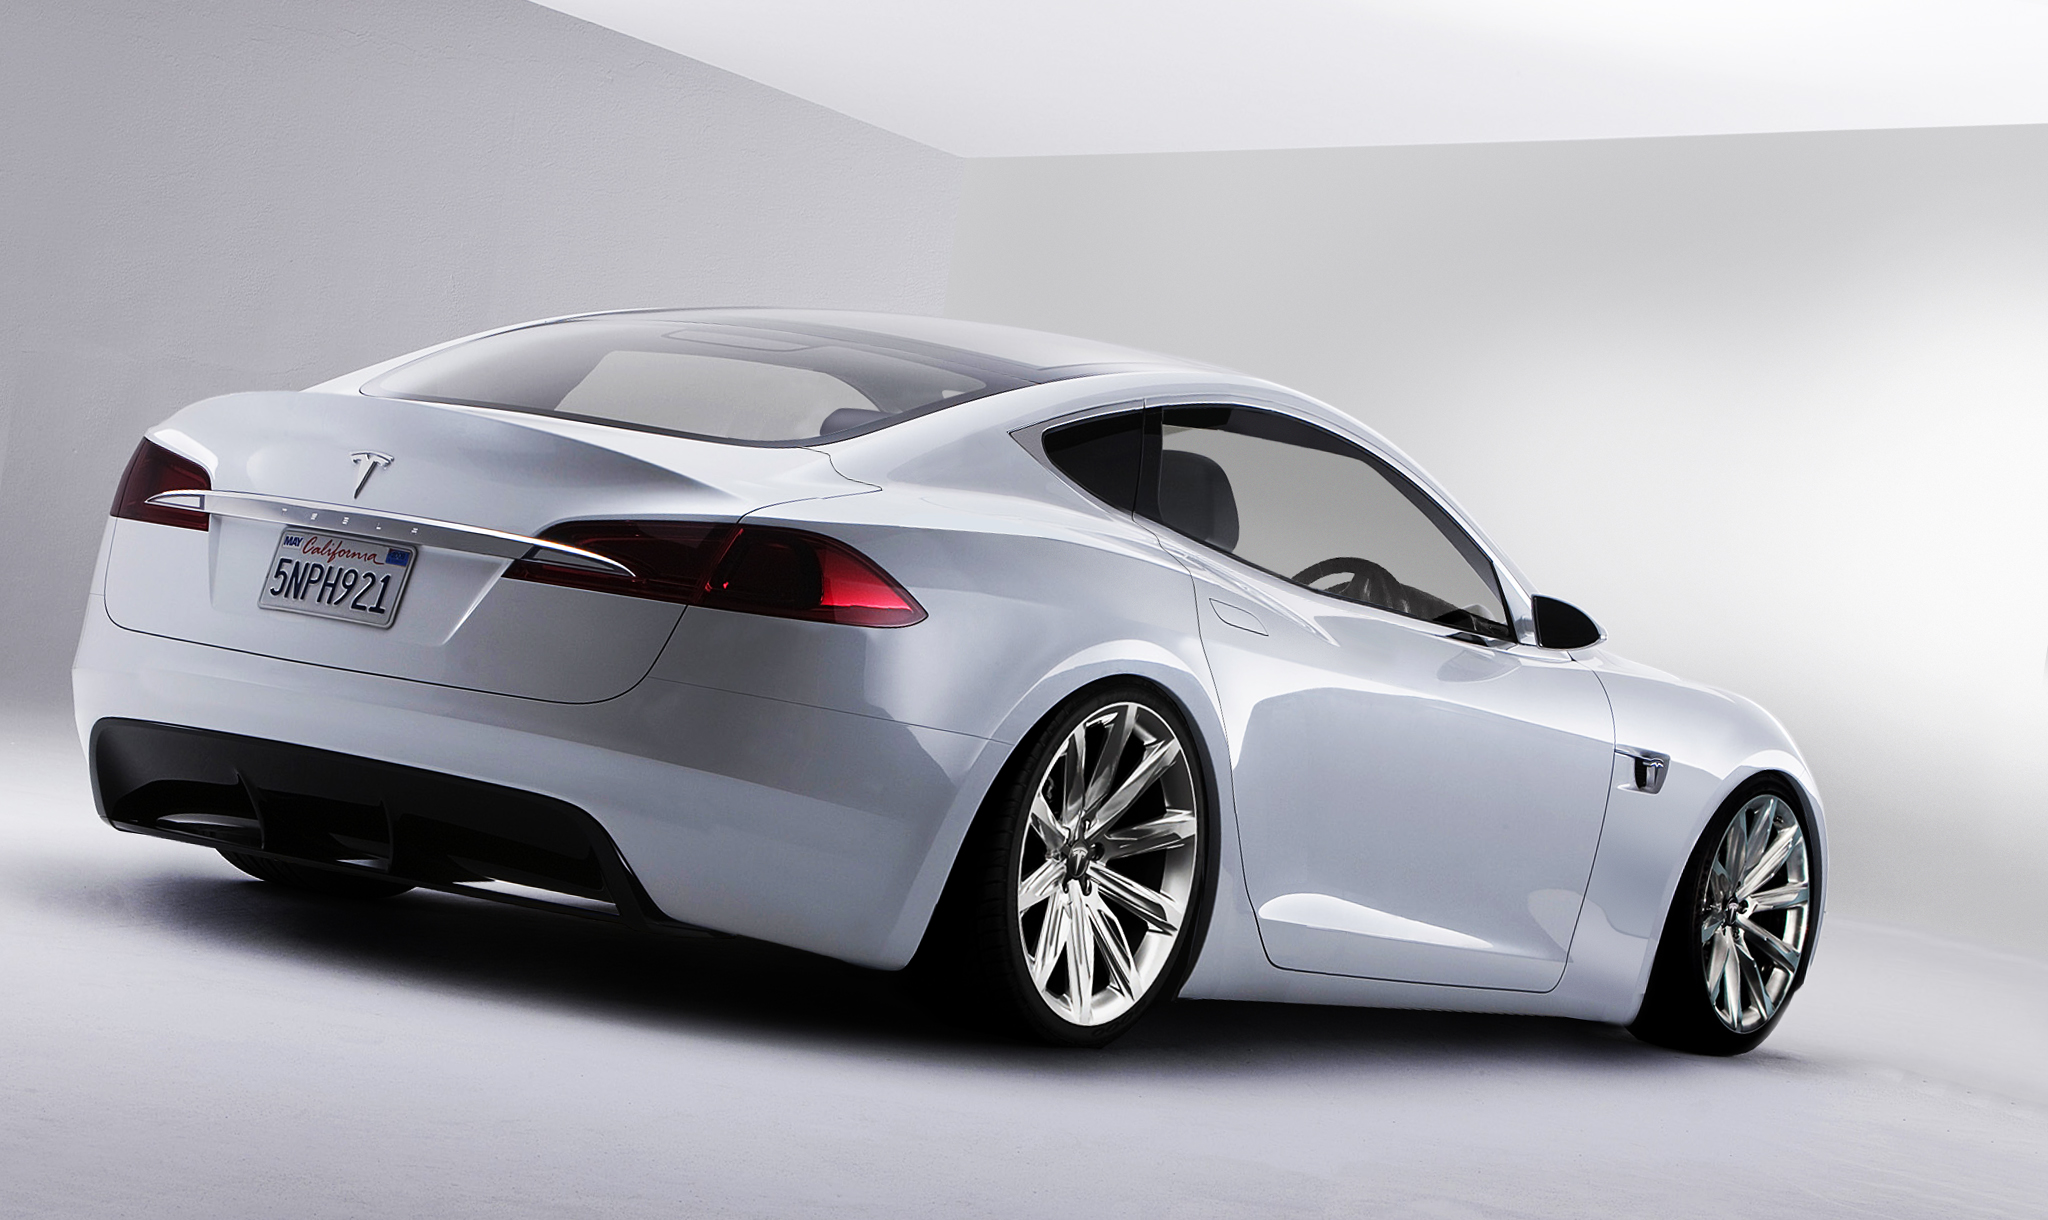 Tesla_coupe_S_concept_by_Kretiins.jpg